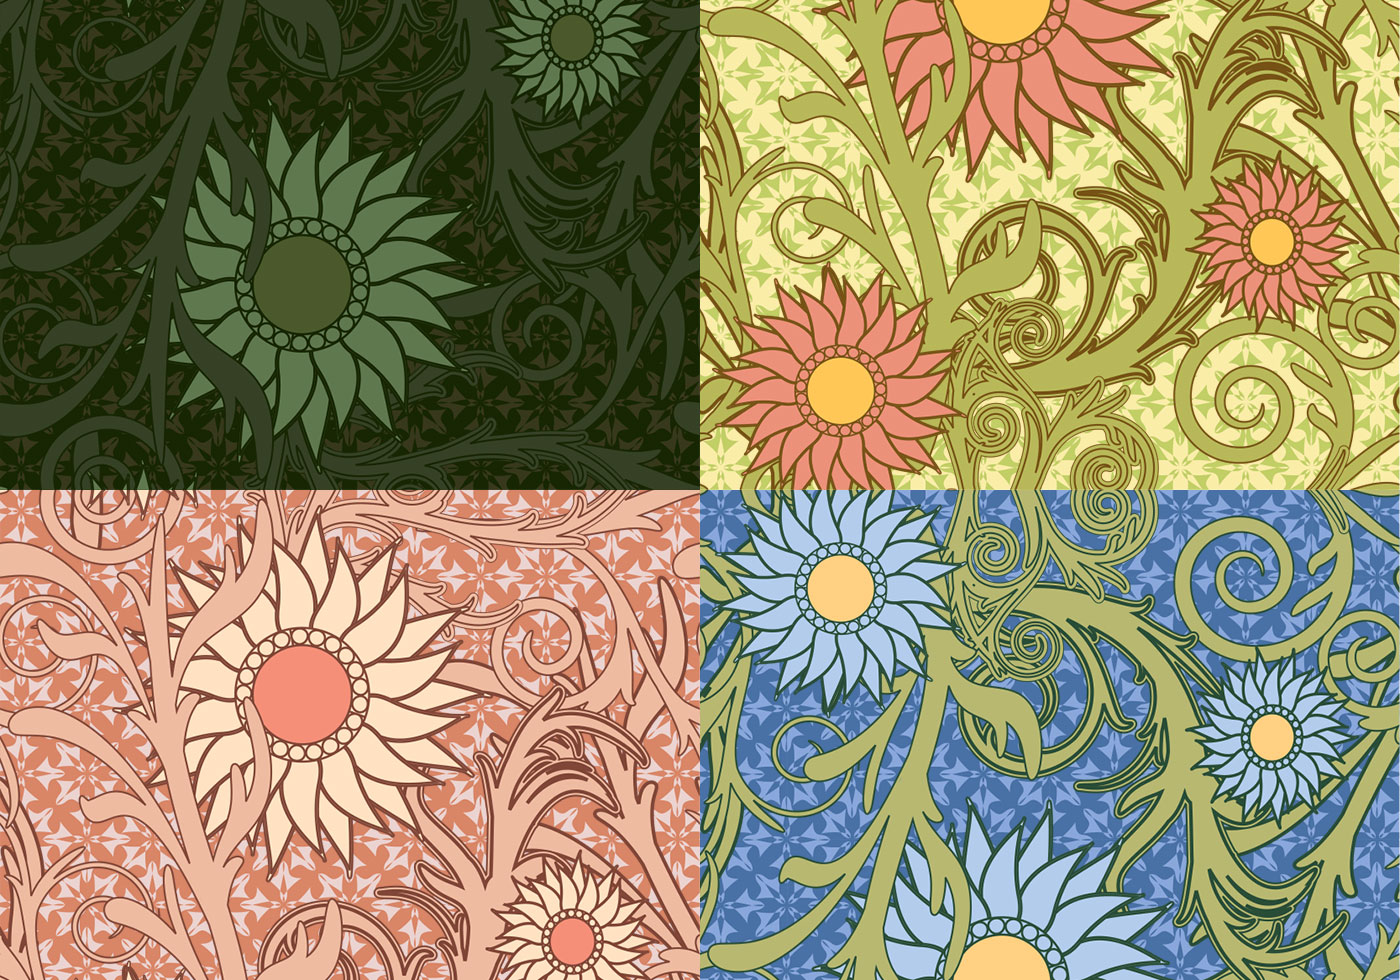 Colorful Sunflower Vector Patterns - Download Free Vectors ...